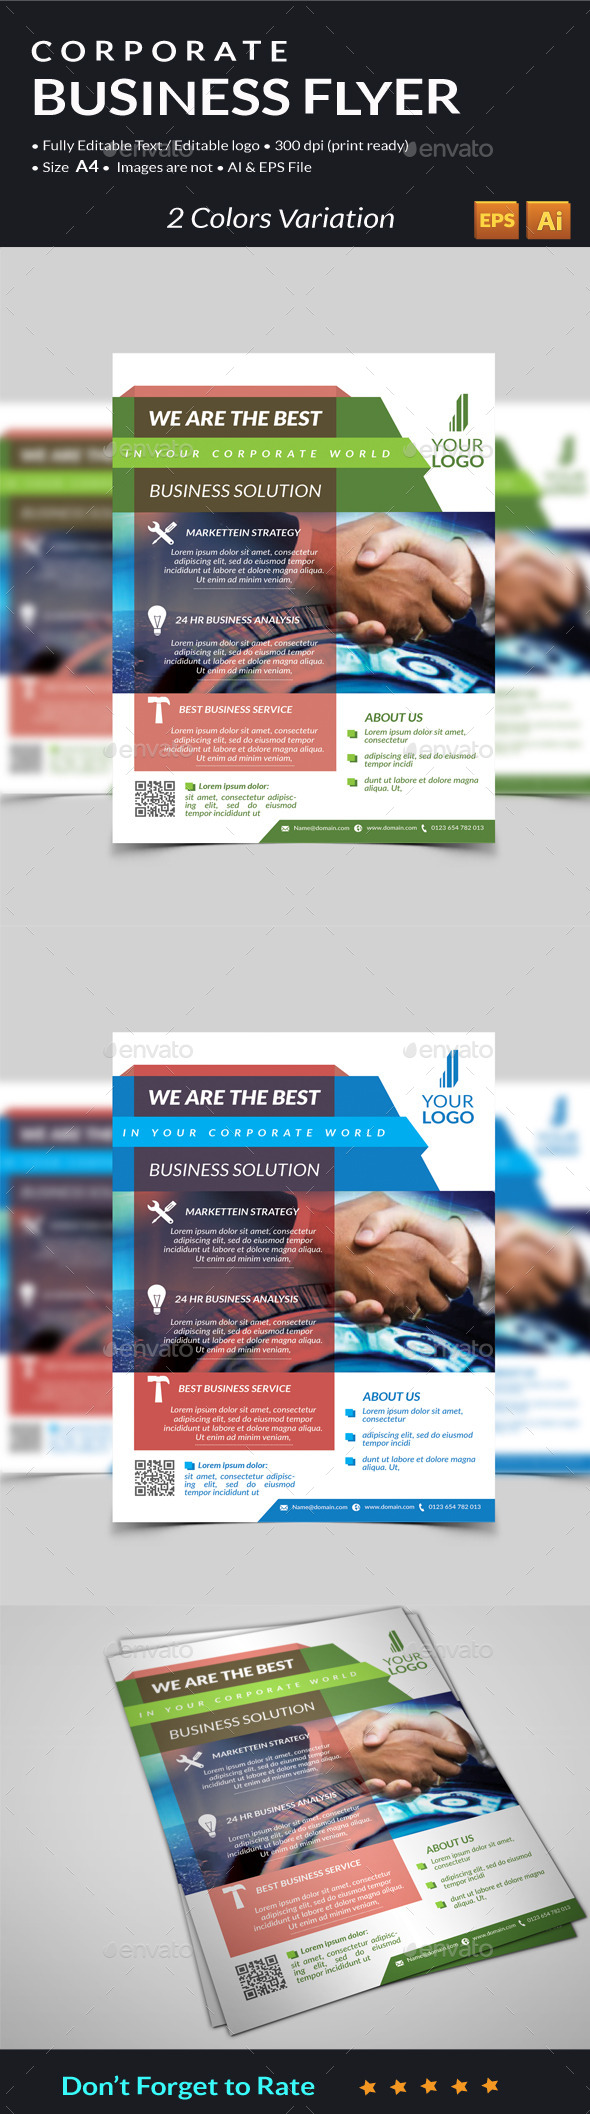 GraphicRiver Corporate Business Flyer 11260222